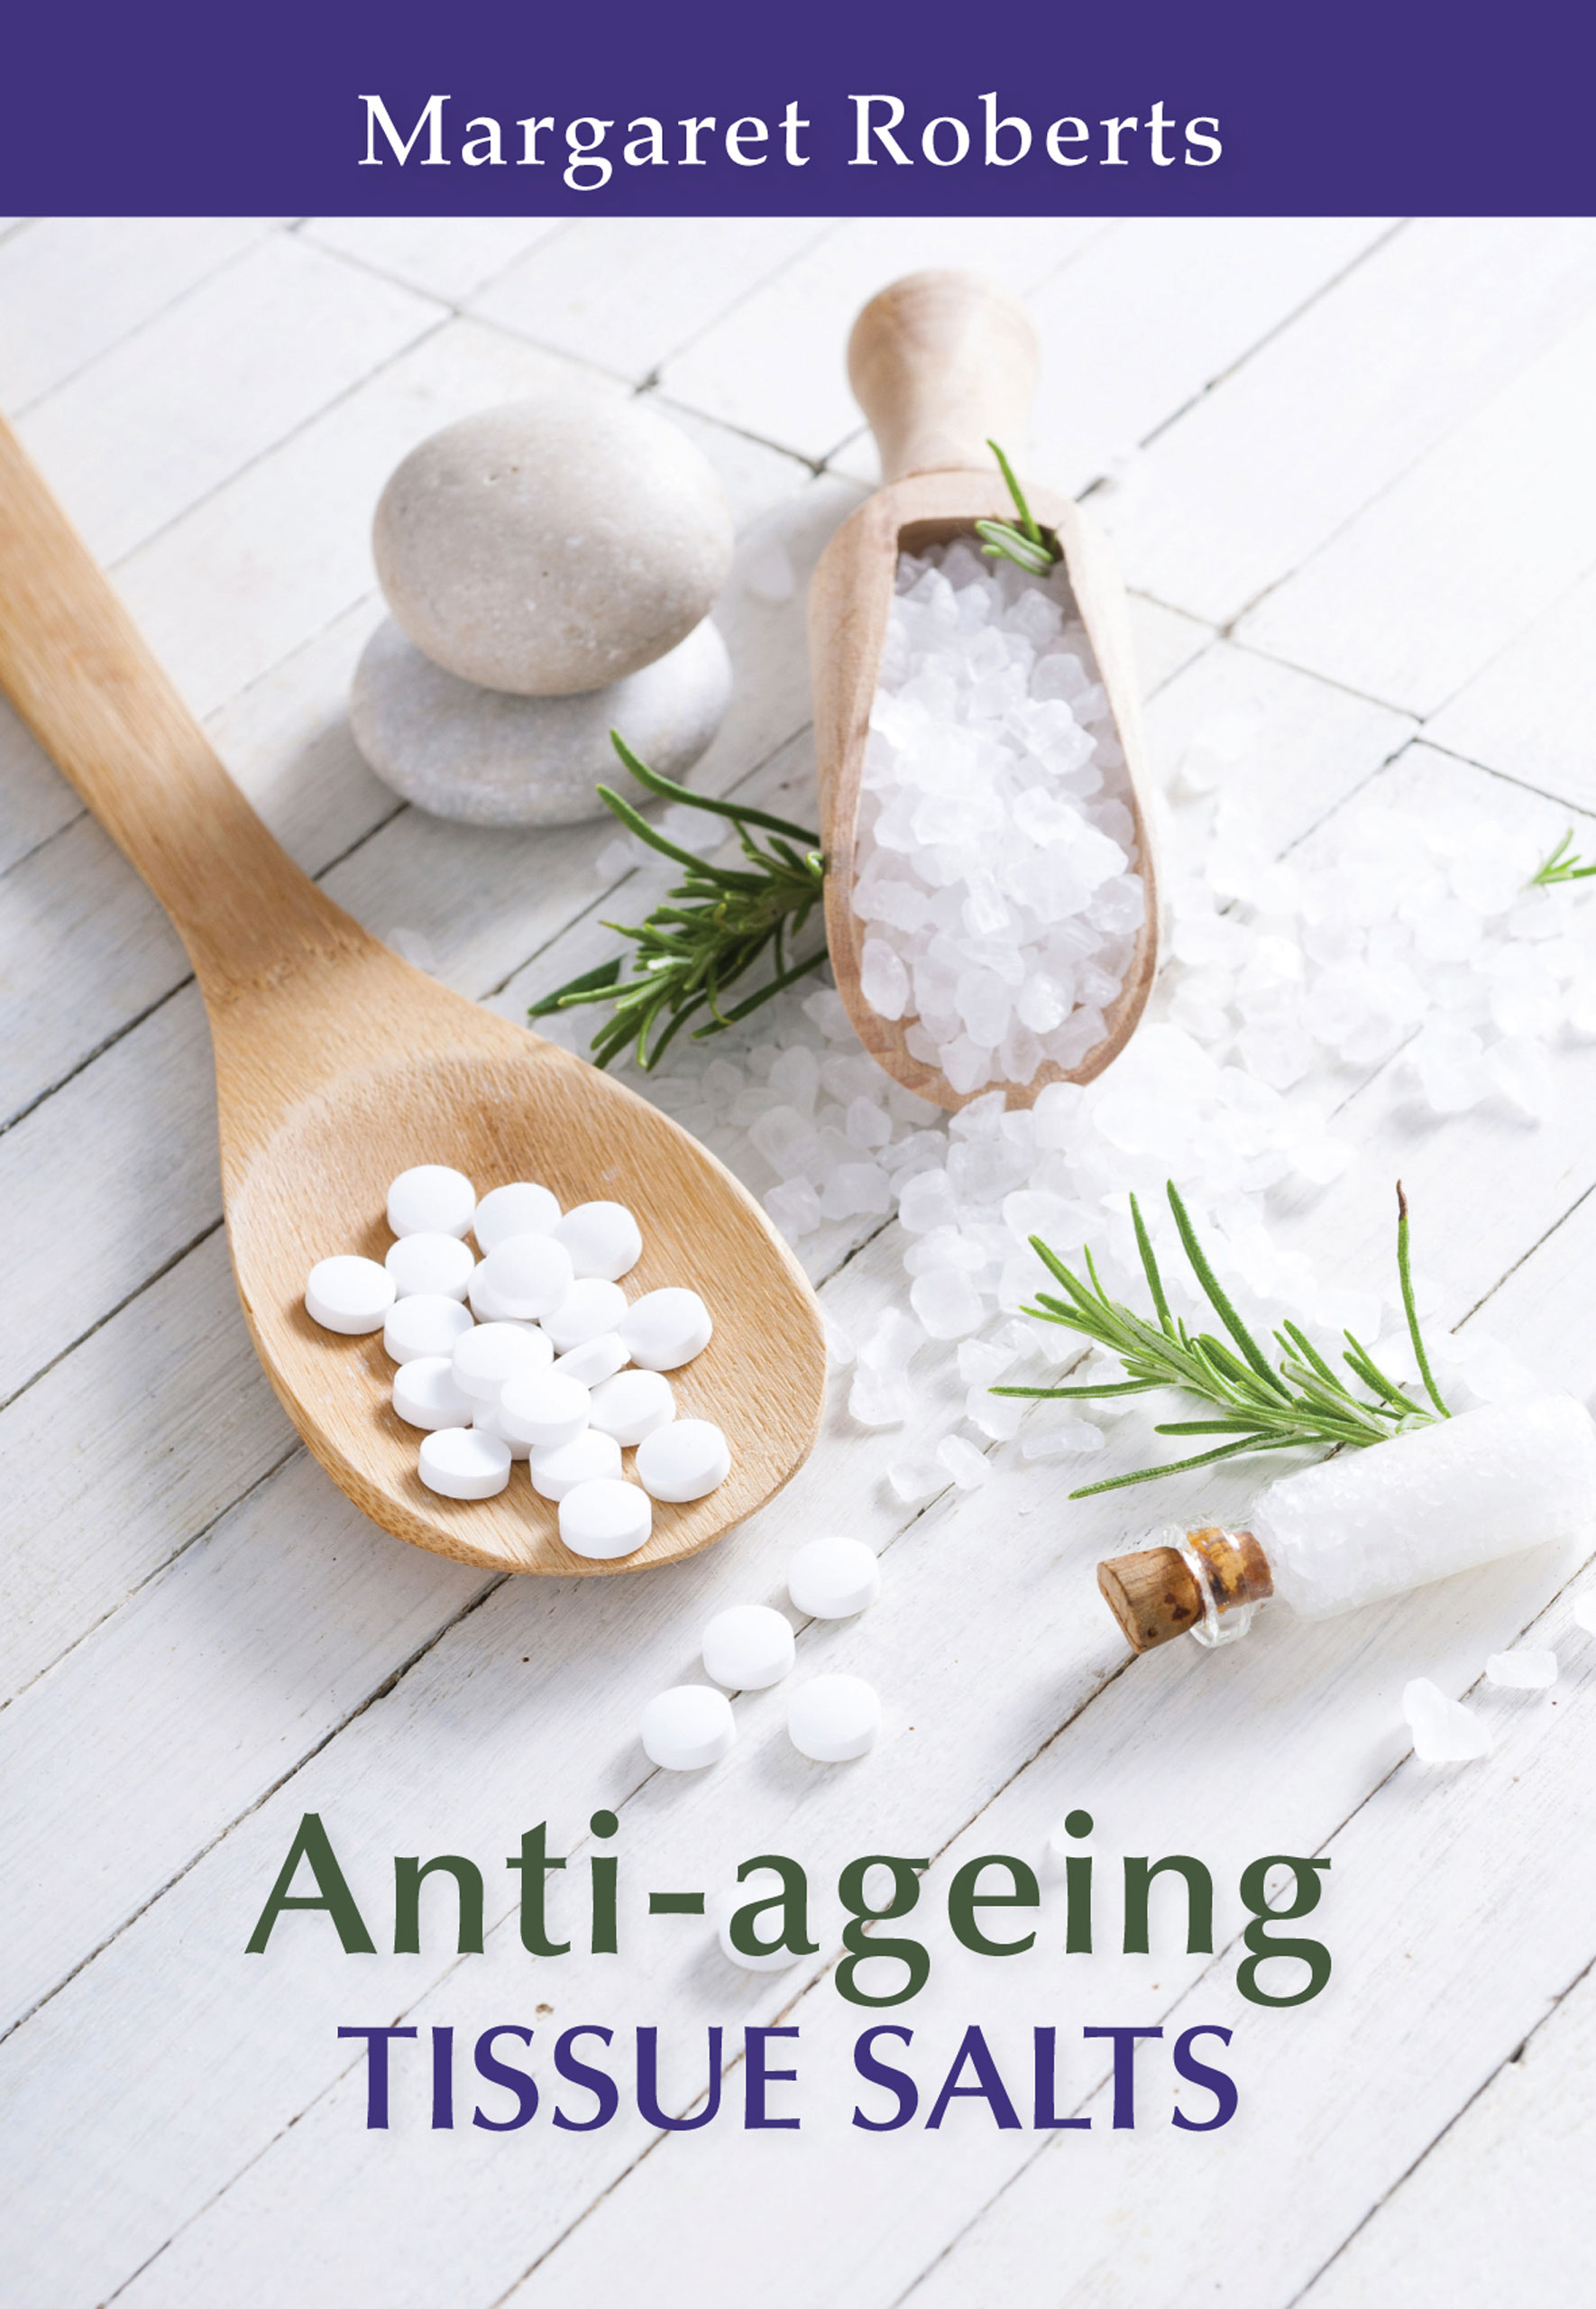 Picture of Tissue salts for anti-ageing